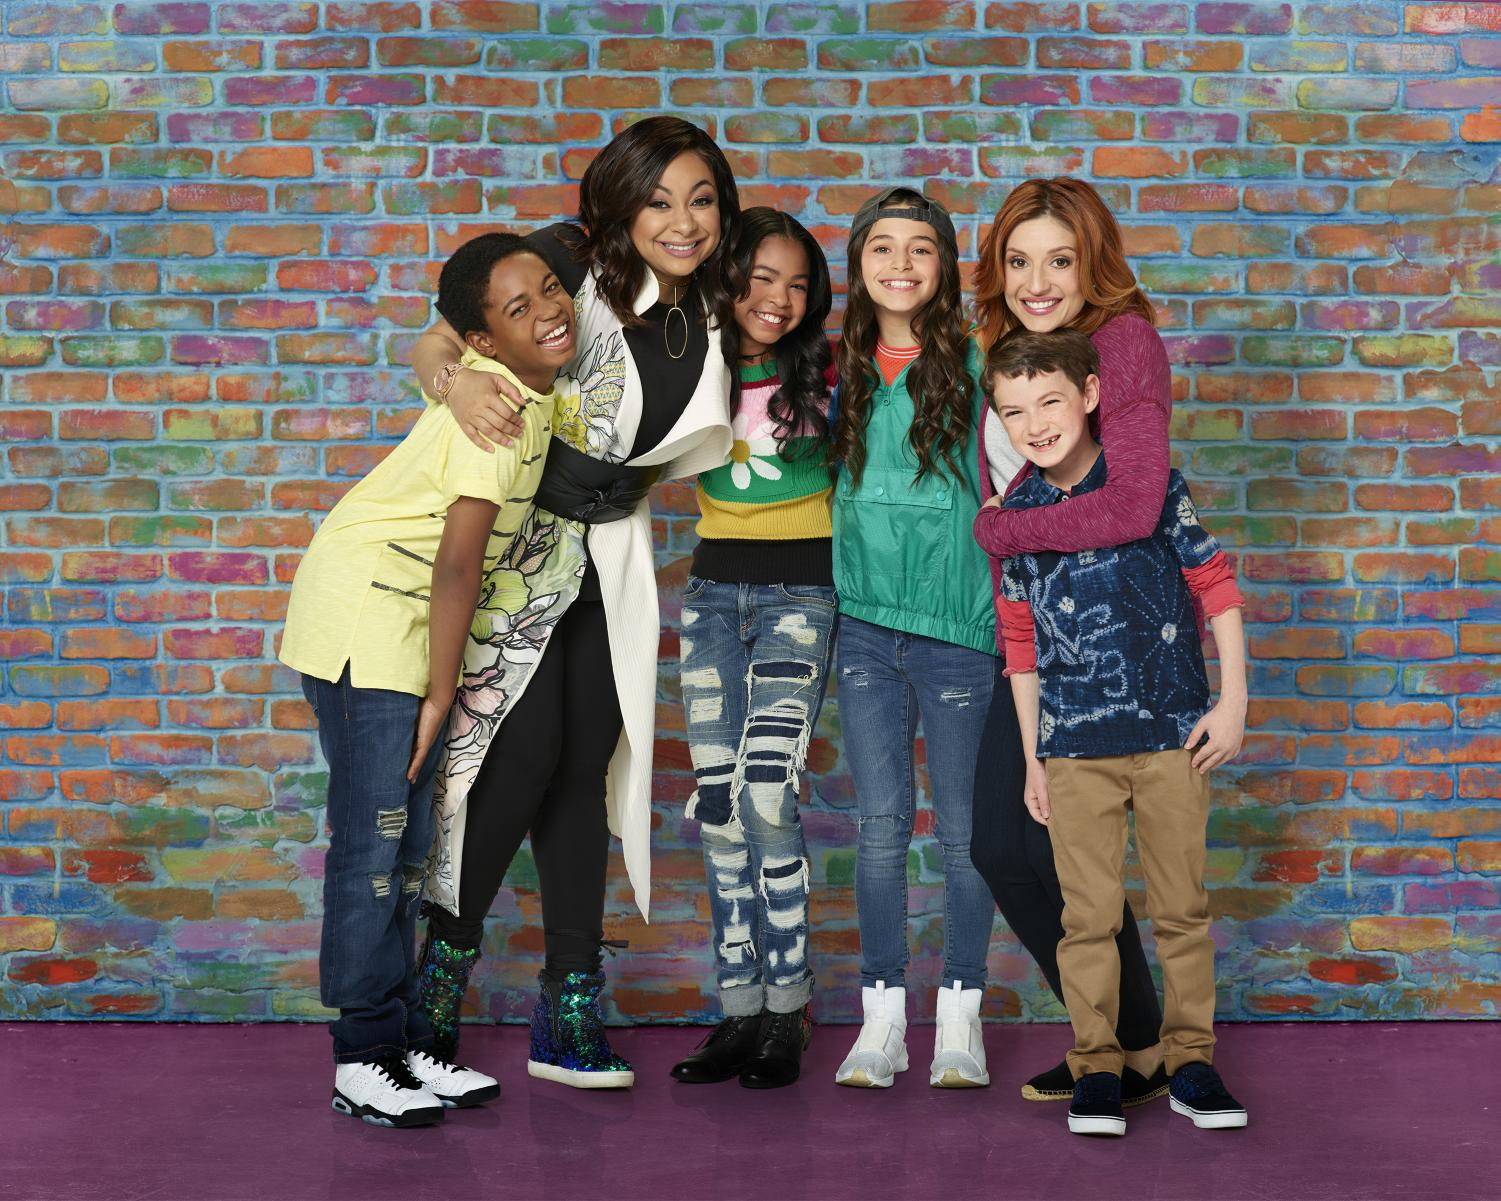 The cast of Raven's Home. Photo released by Disney Press.